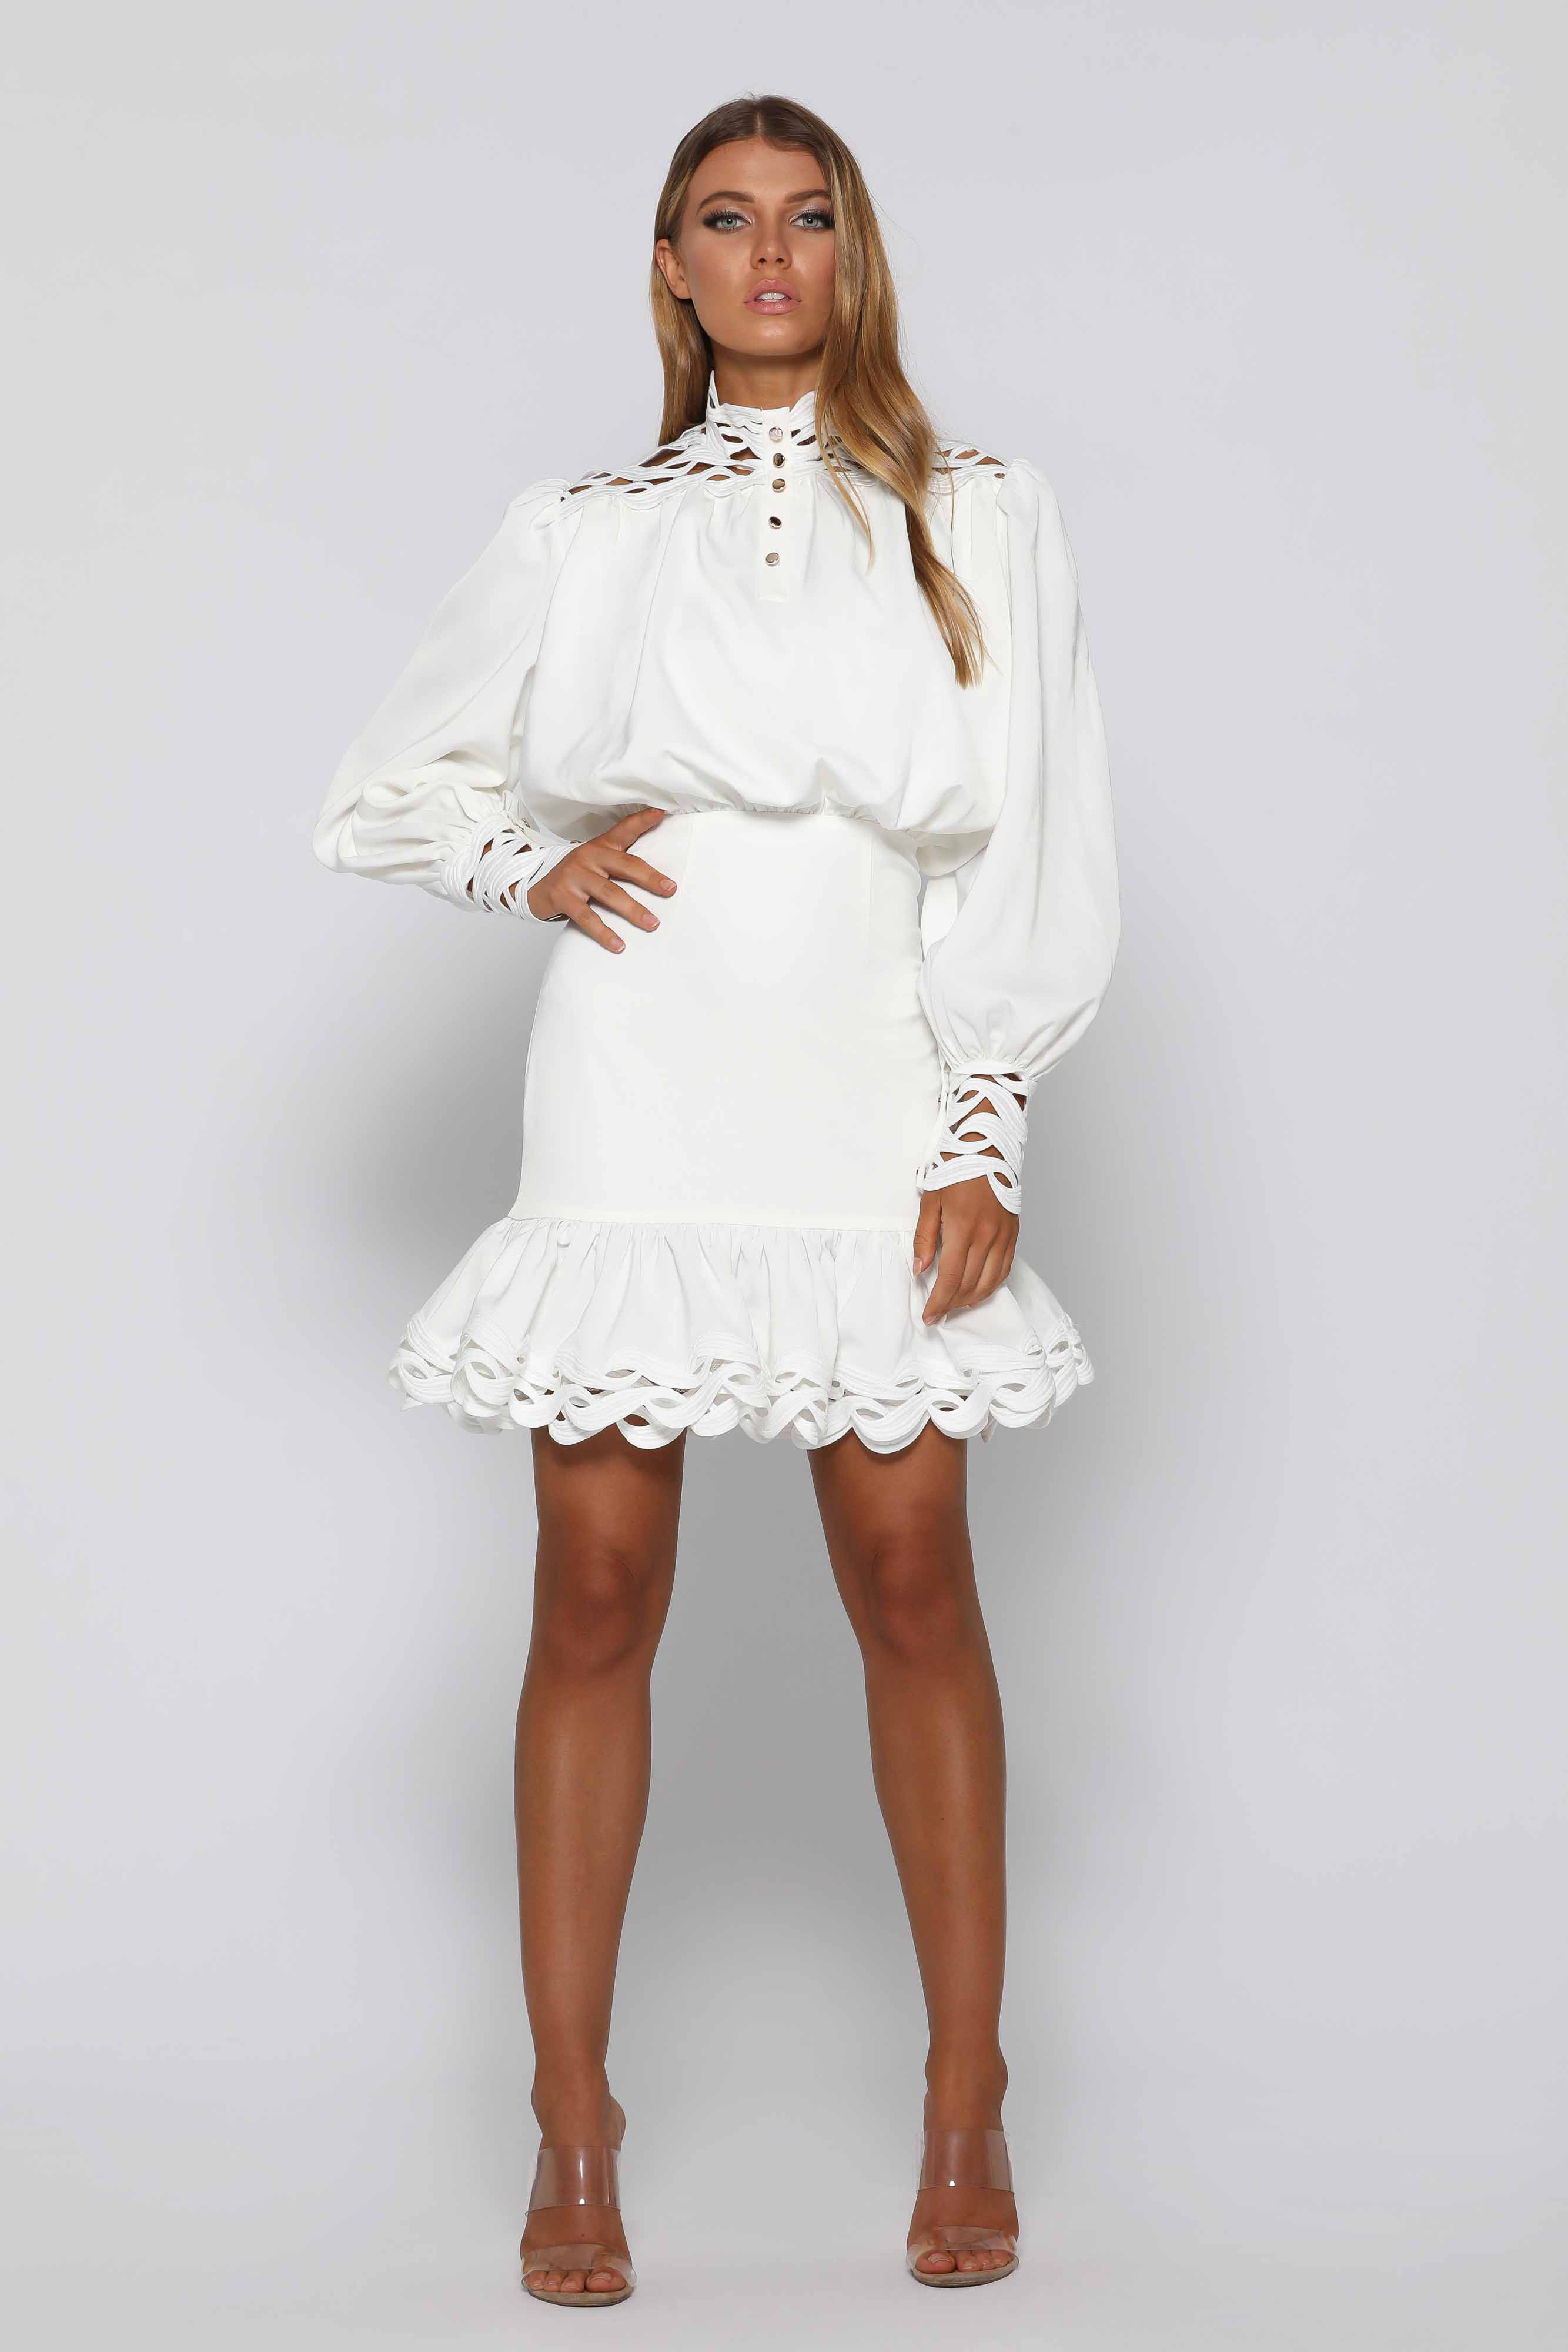 High neck Ruffled dress with lace detail and gold buttons